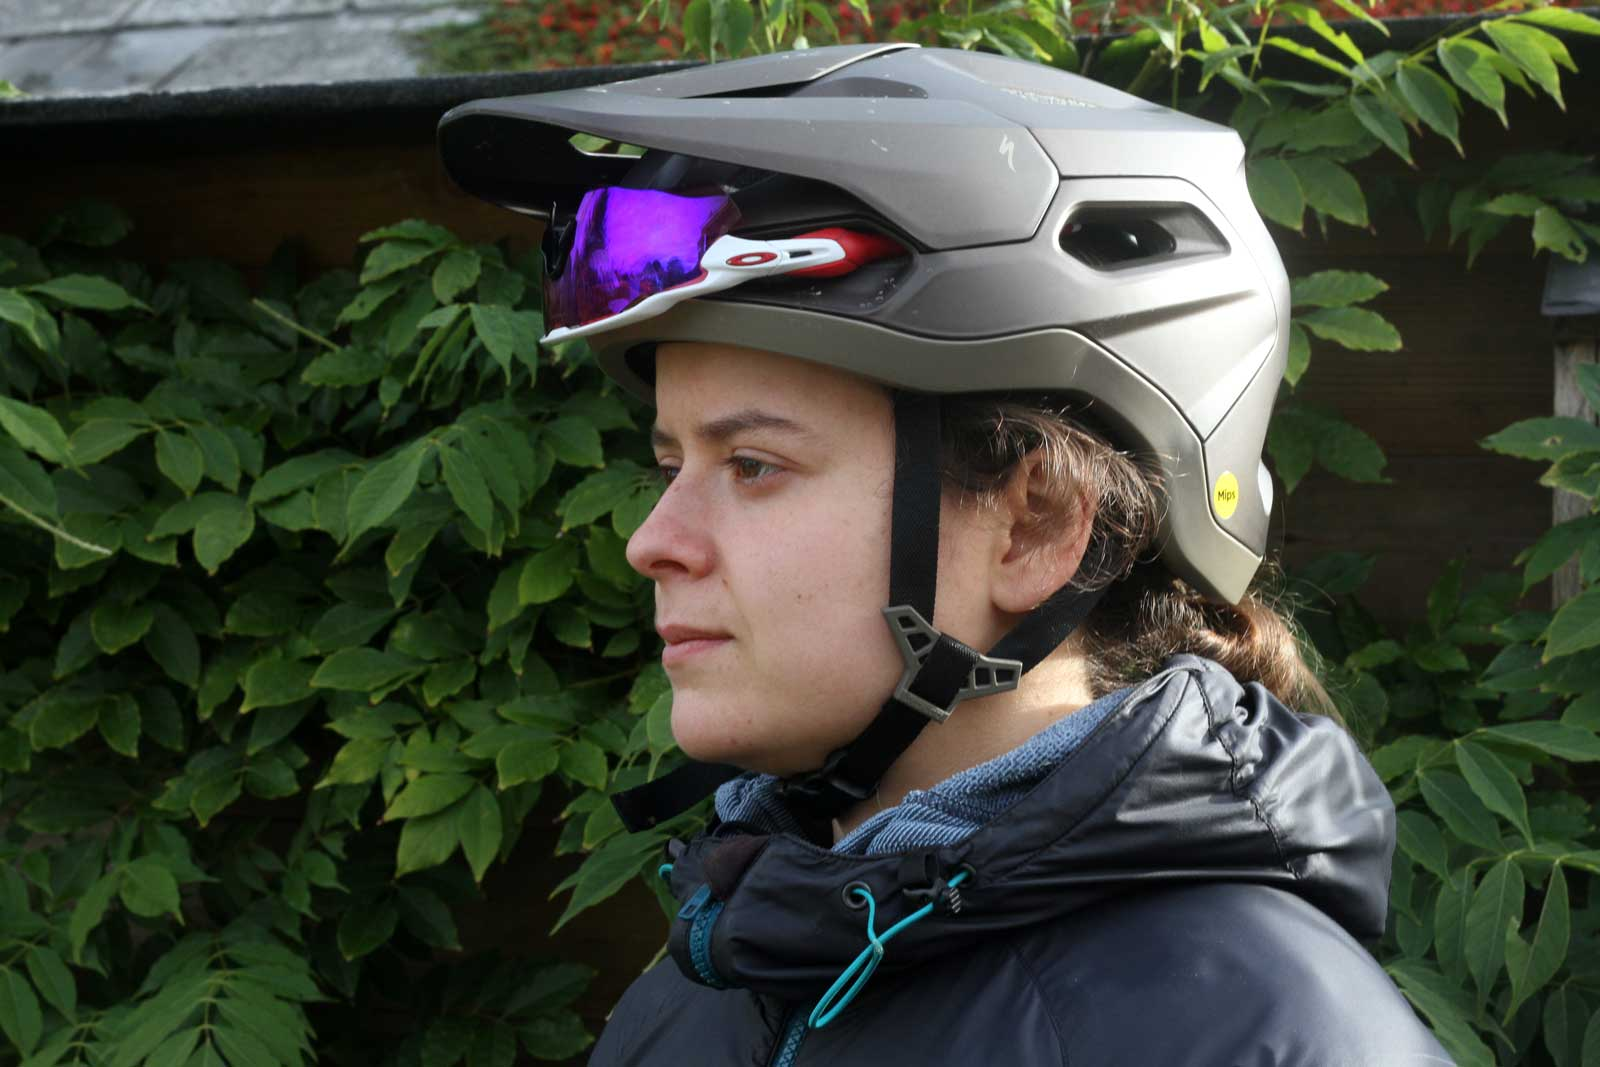 specialized tactic 4 helmet review sunglasses stowage